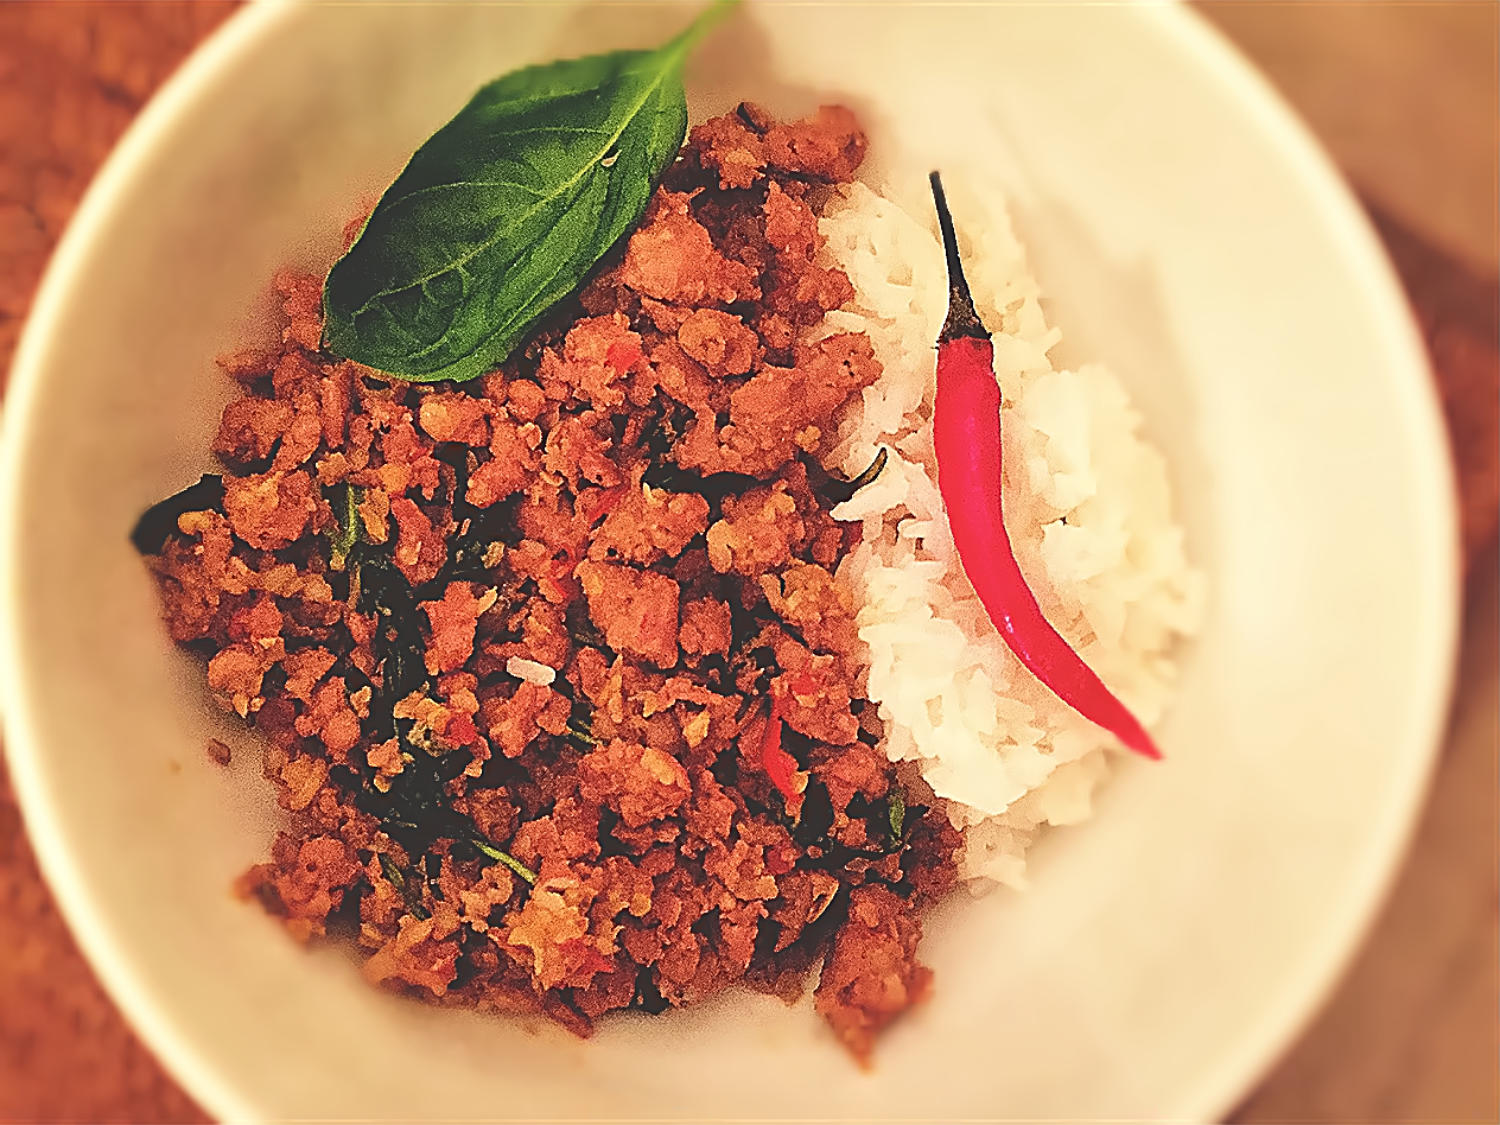 Pad Kra Prao Moo recipe. Thai minced pork recipe.